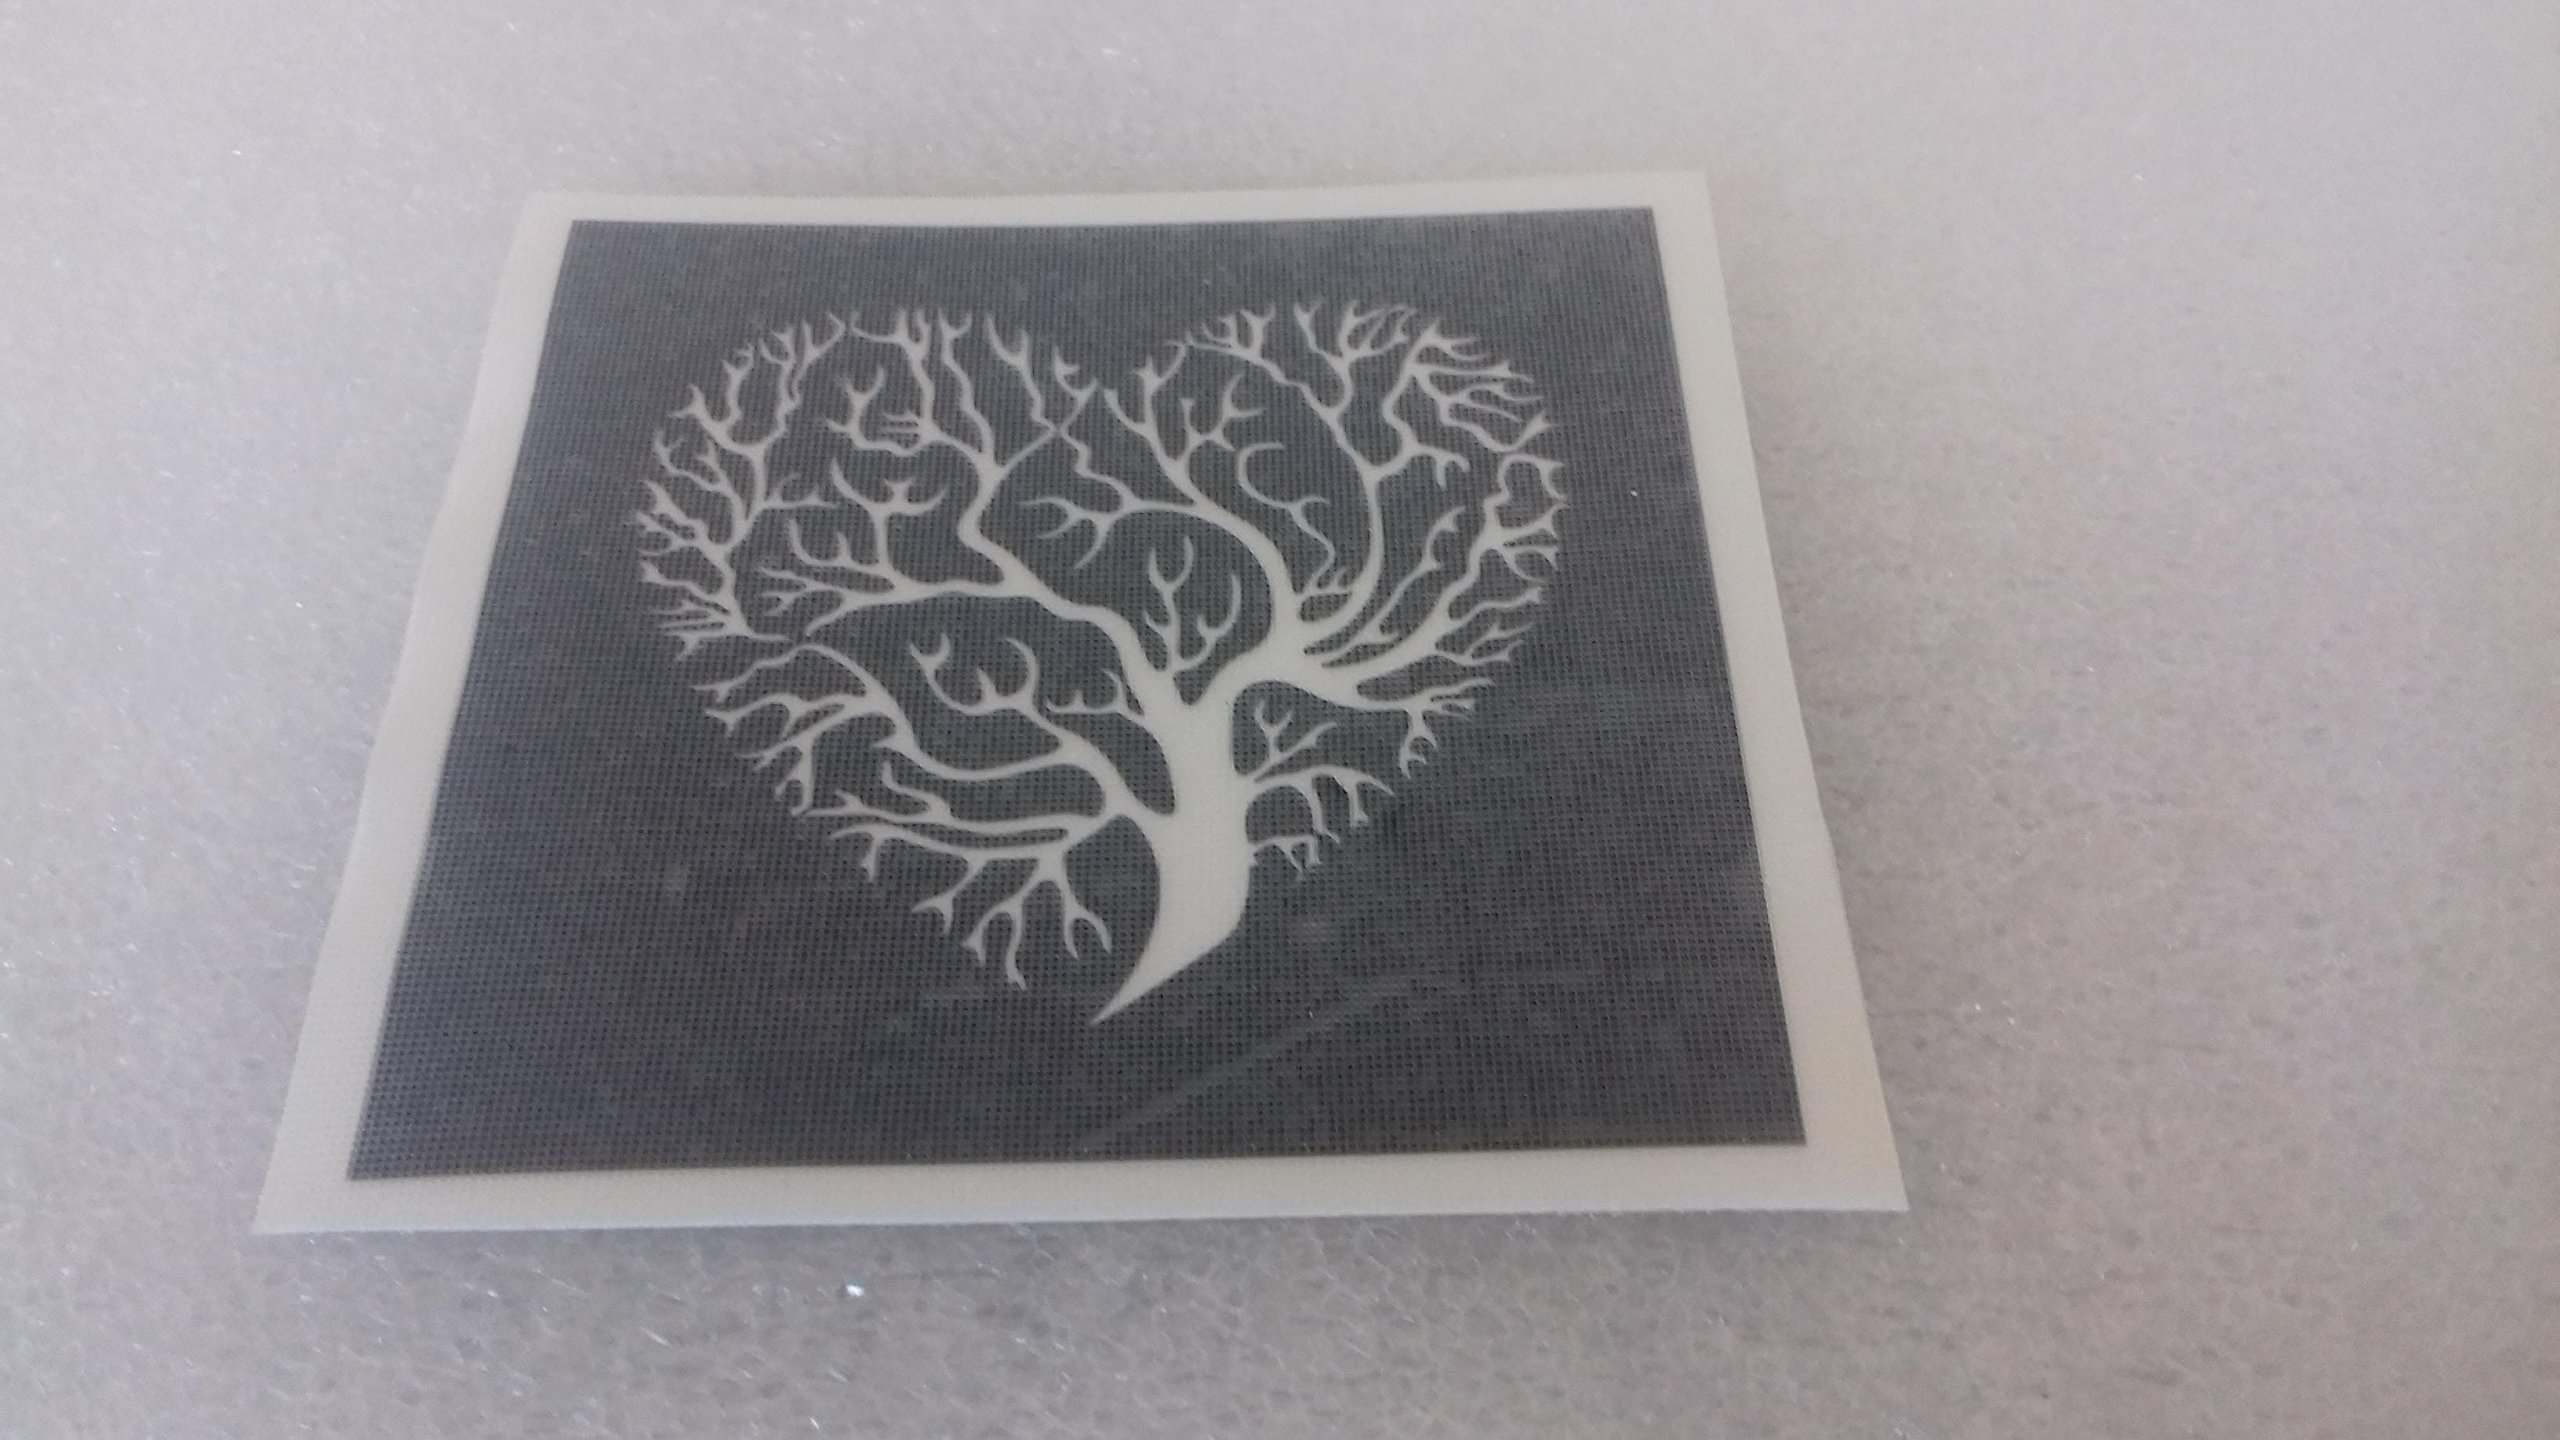 25 x tree of life stencils for etching on glass gift present glassware hobby craft